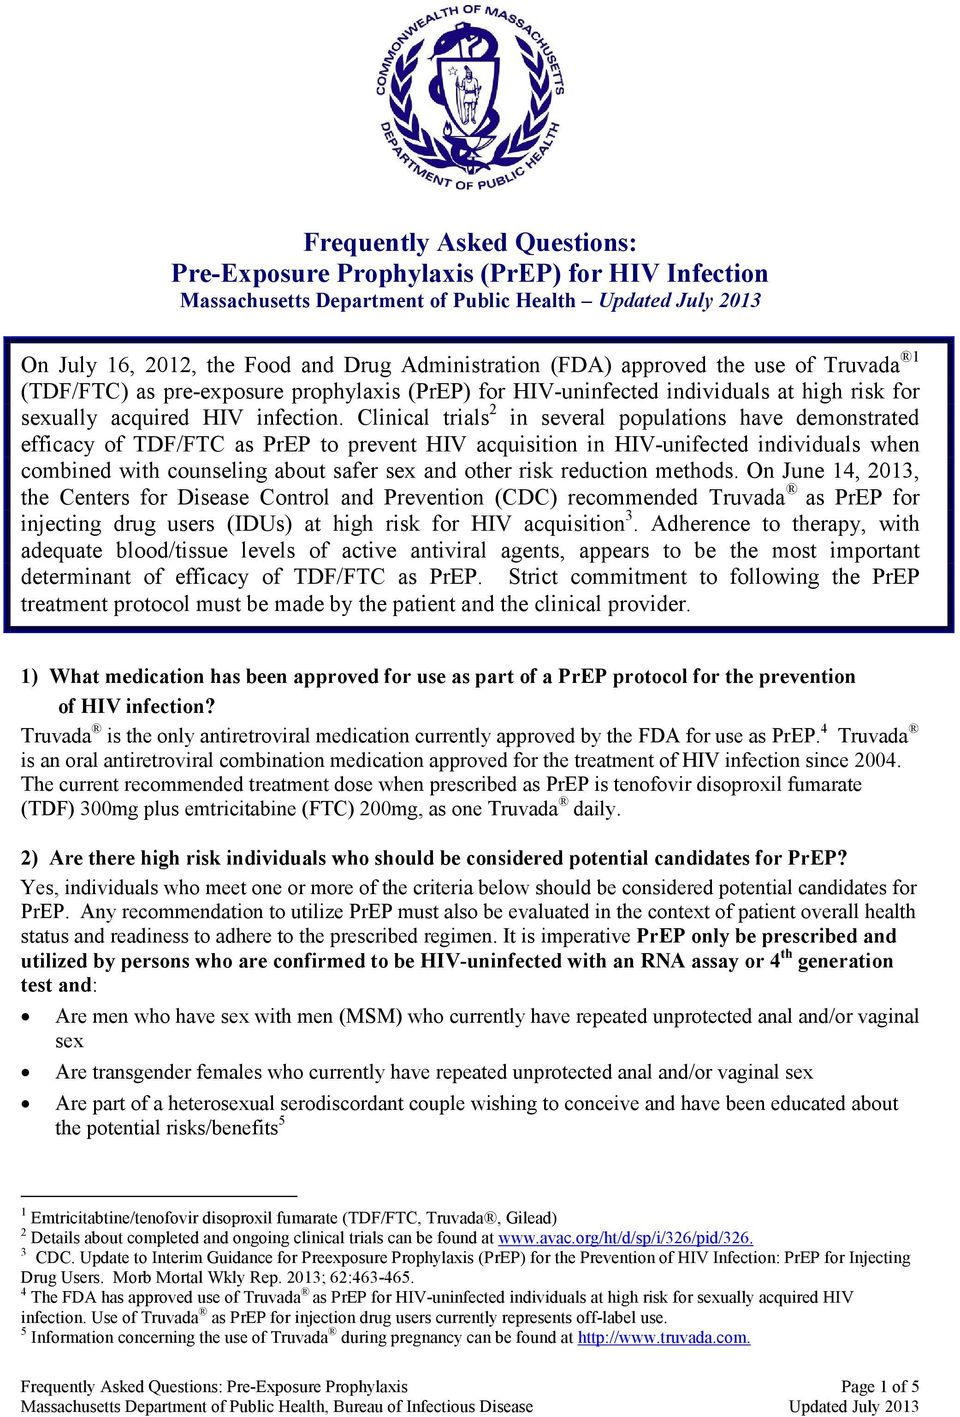 Clinical trials 2 in several populations have demonstrated efficacy of TDF/FTC as PrEP to prevent HIV acquisition in HIV-unifected individuals when combined with counseling about safer sex and other